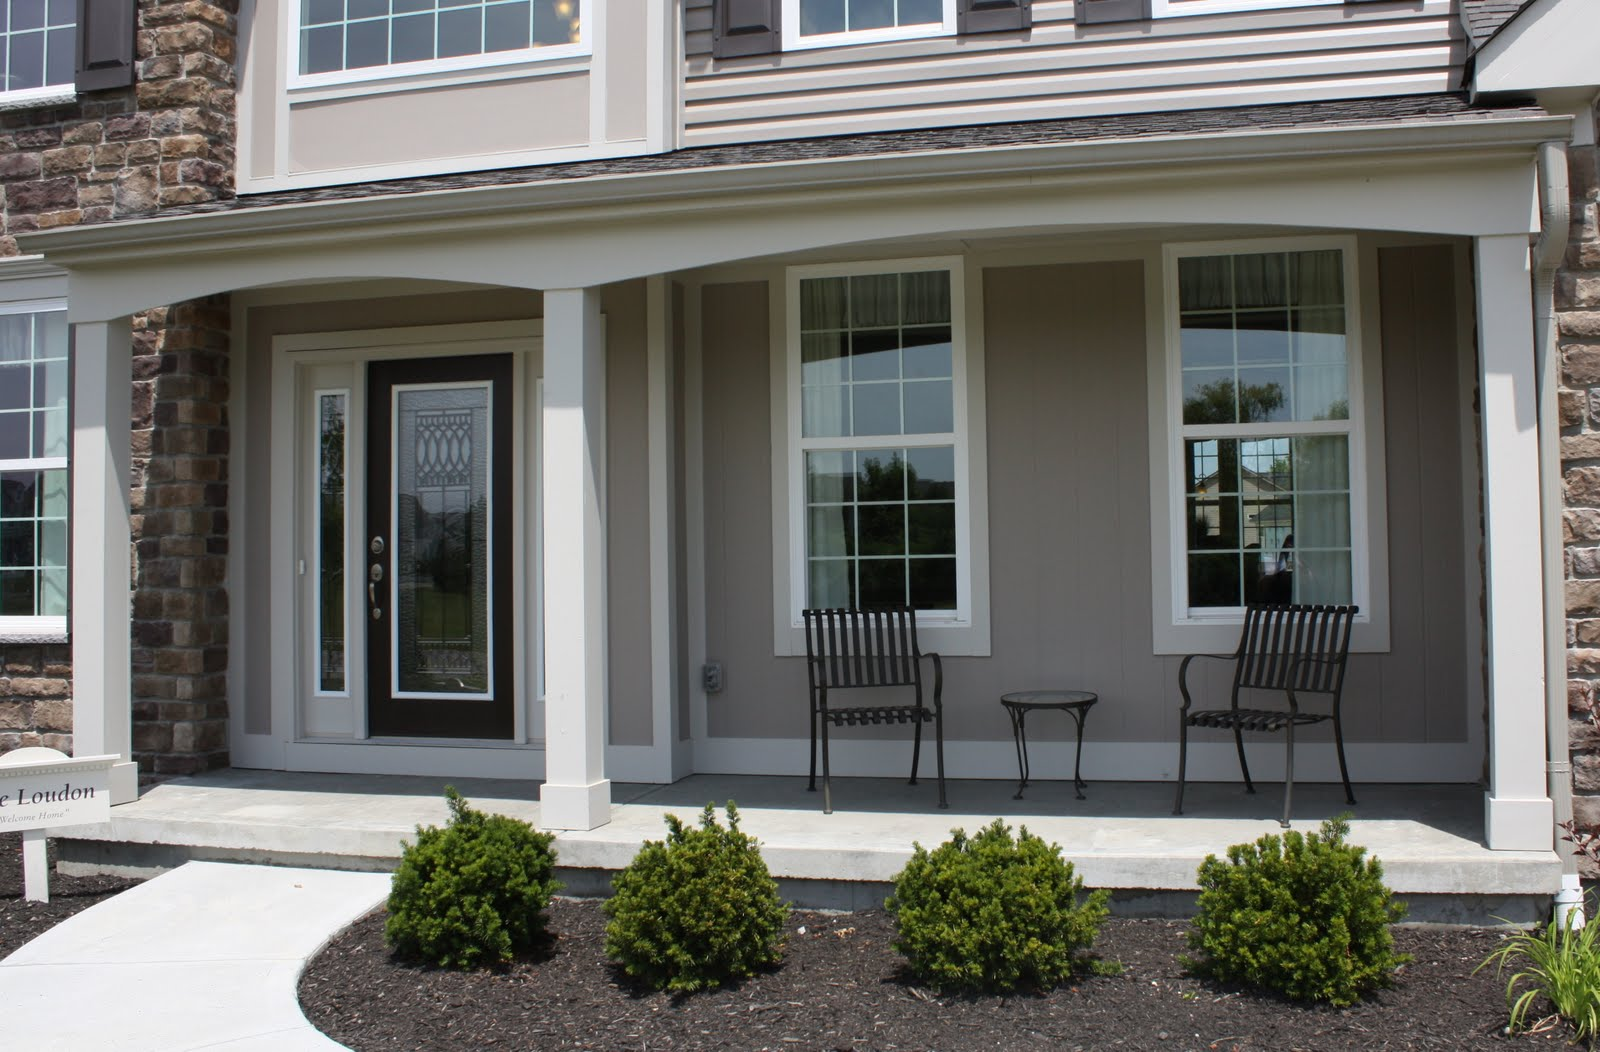 Welcome new post has been published on for Front door patio ideas